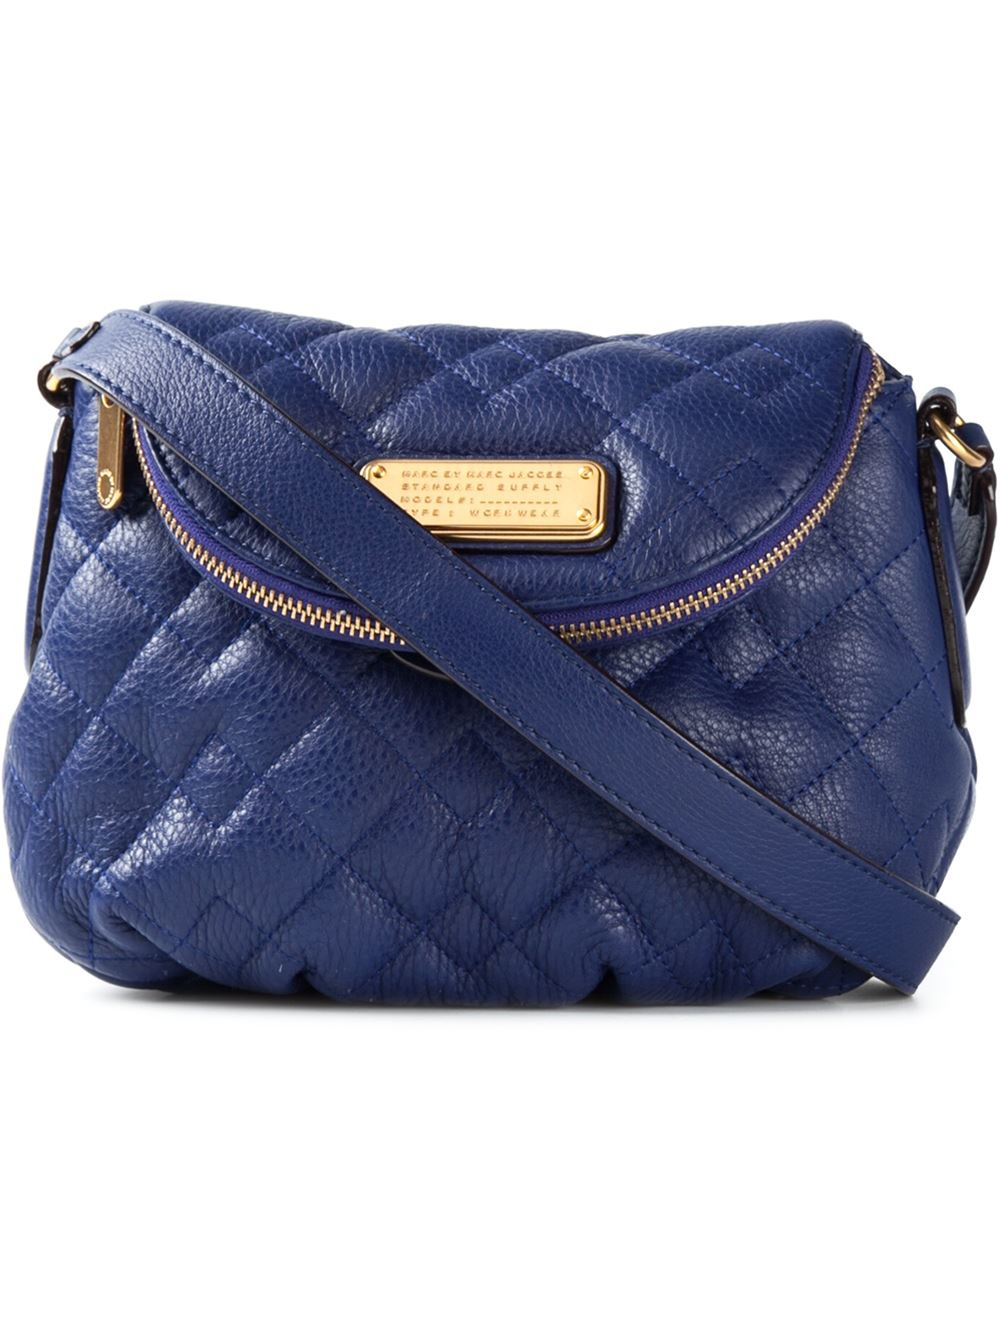 a4fb80943e Marc By Marc Jacobs Mini 'New Q Quilted Natasha' Crossbody Bag in ...